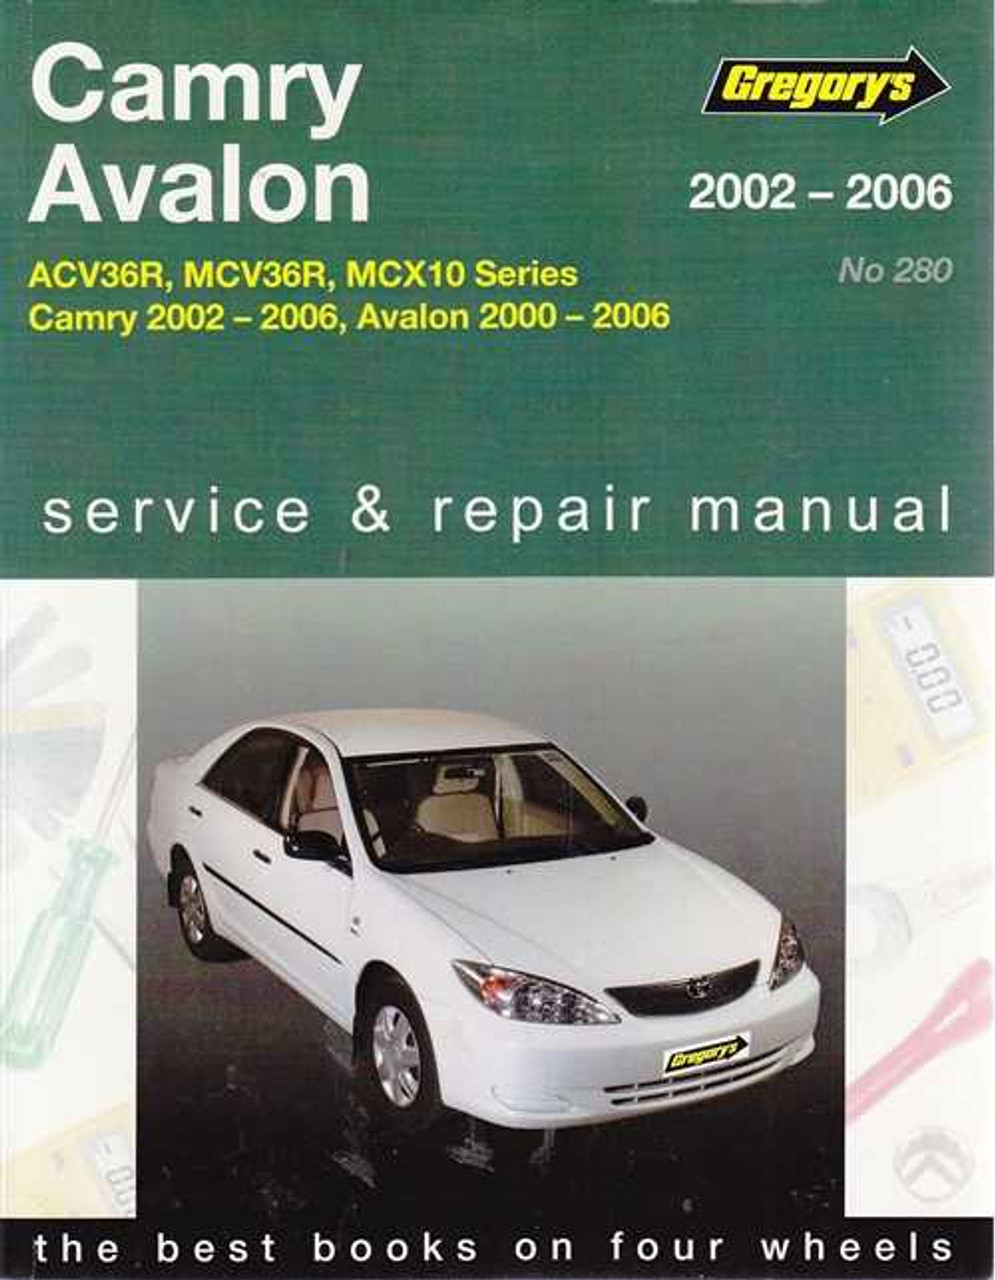 toyota camry avalon acv36r mcv36r mcx10 series 2000 2006 rh automotobookshop com au 2006 Toyota Camry Manual PDF 2006 toyota camry repair manual pdf free download